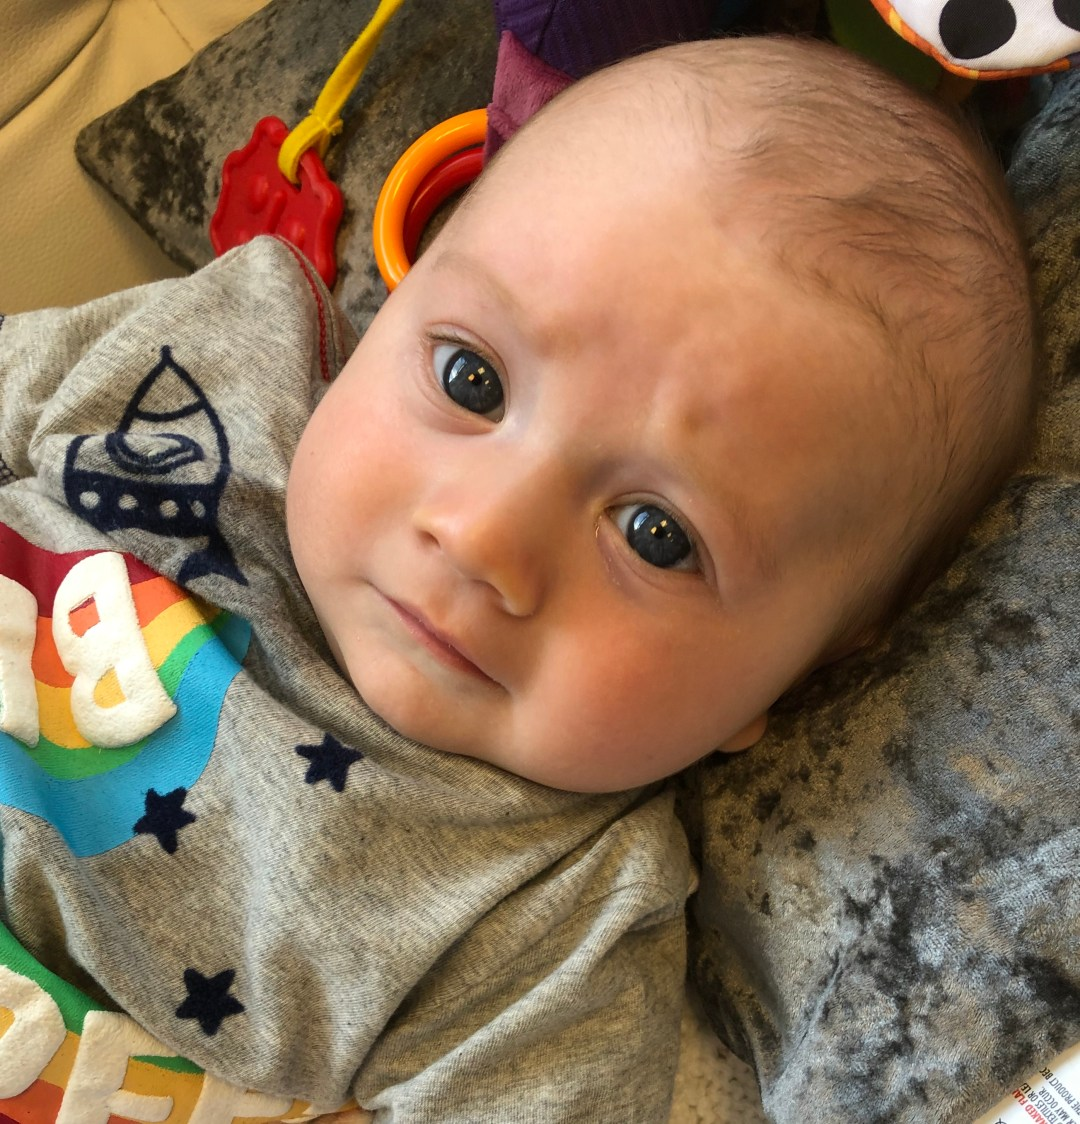 2 Vessel Cord – Our Experience with our Baby Boy